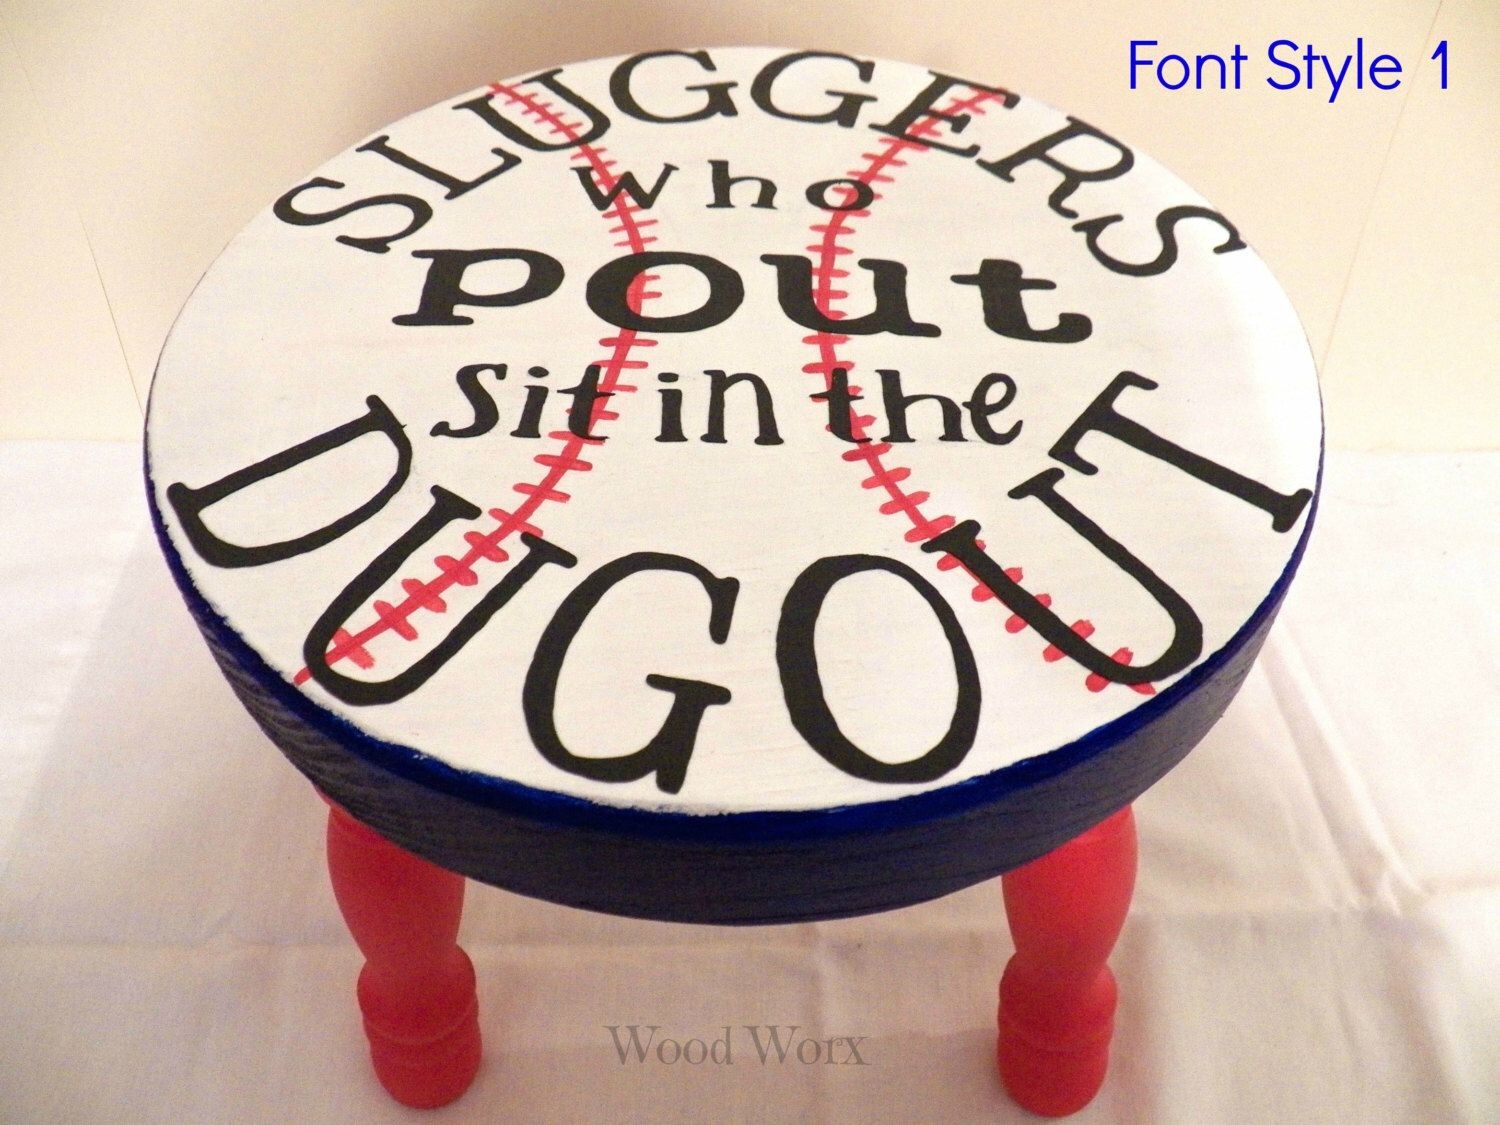 Diy make your own sand filled time out stool diy craft projects - Handmade Sluggers Who Pout Time Out Stool Toddlers Kids Hand Painted